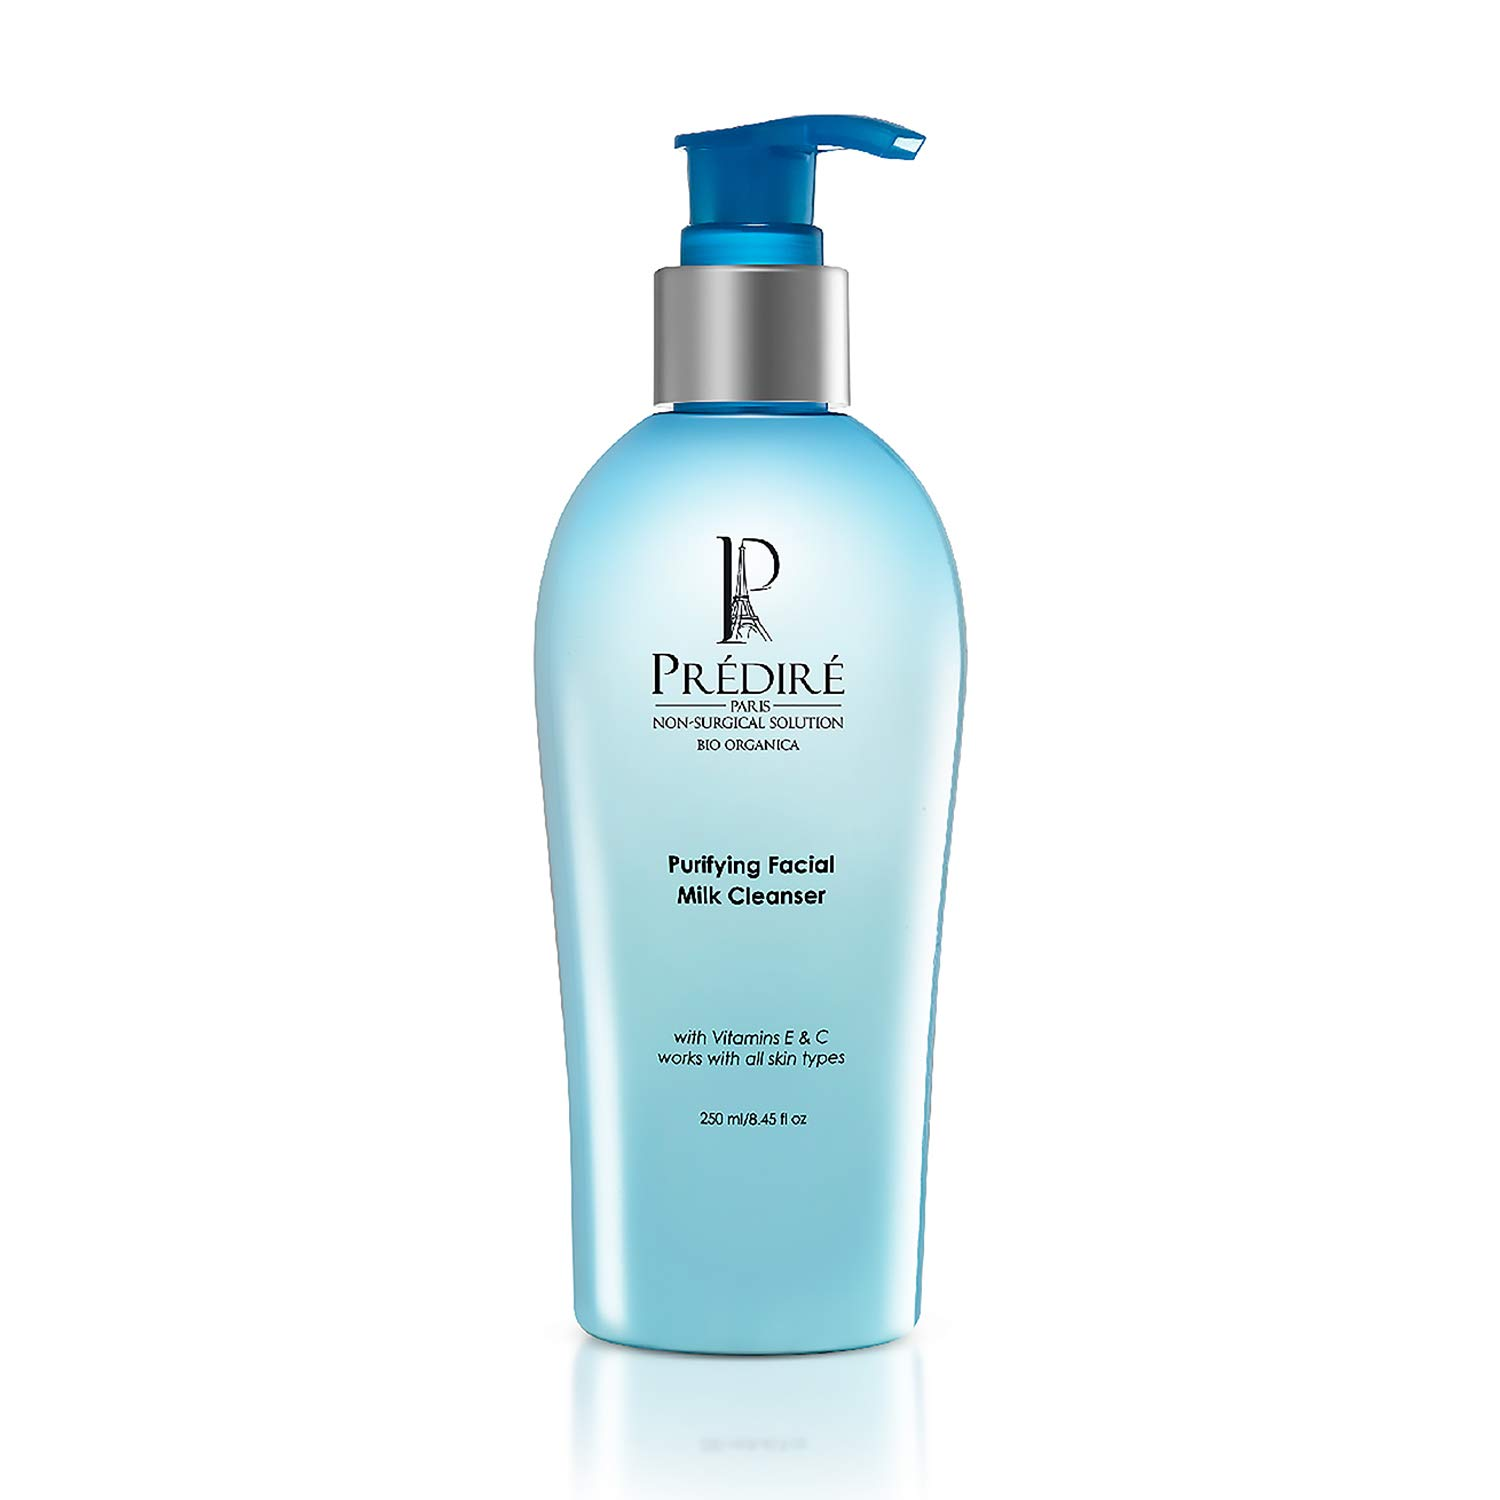 Outstanding Purifying Facial safety Milk cleanser 250ML by Predire